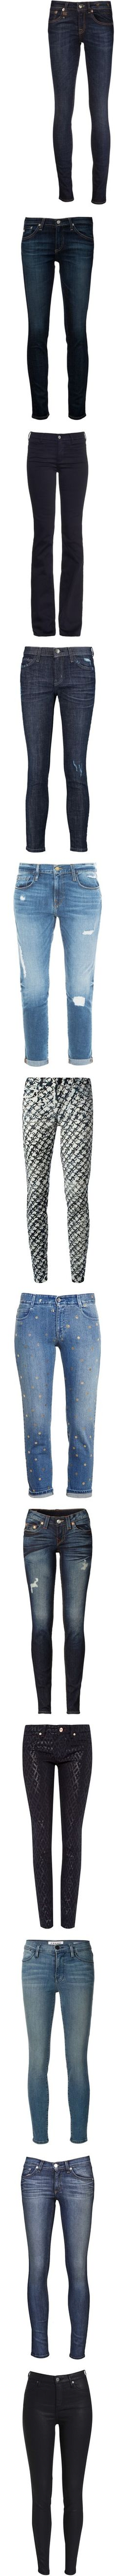 Bottoms: Jeans IV by jay-to-the-kay on Polyvore featuring skinnyjeans, jeans, pants, blue, denim skinny jeans, blue skinny jeans, skinny leg jeans, r13 skinny jeans, skinny fit jeans and ag+adriano+goldschmied jeans